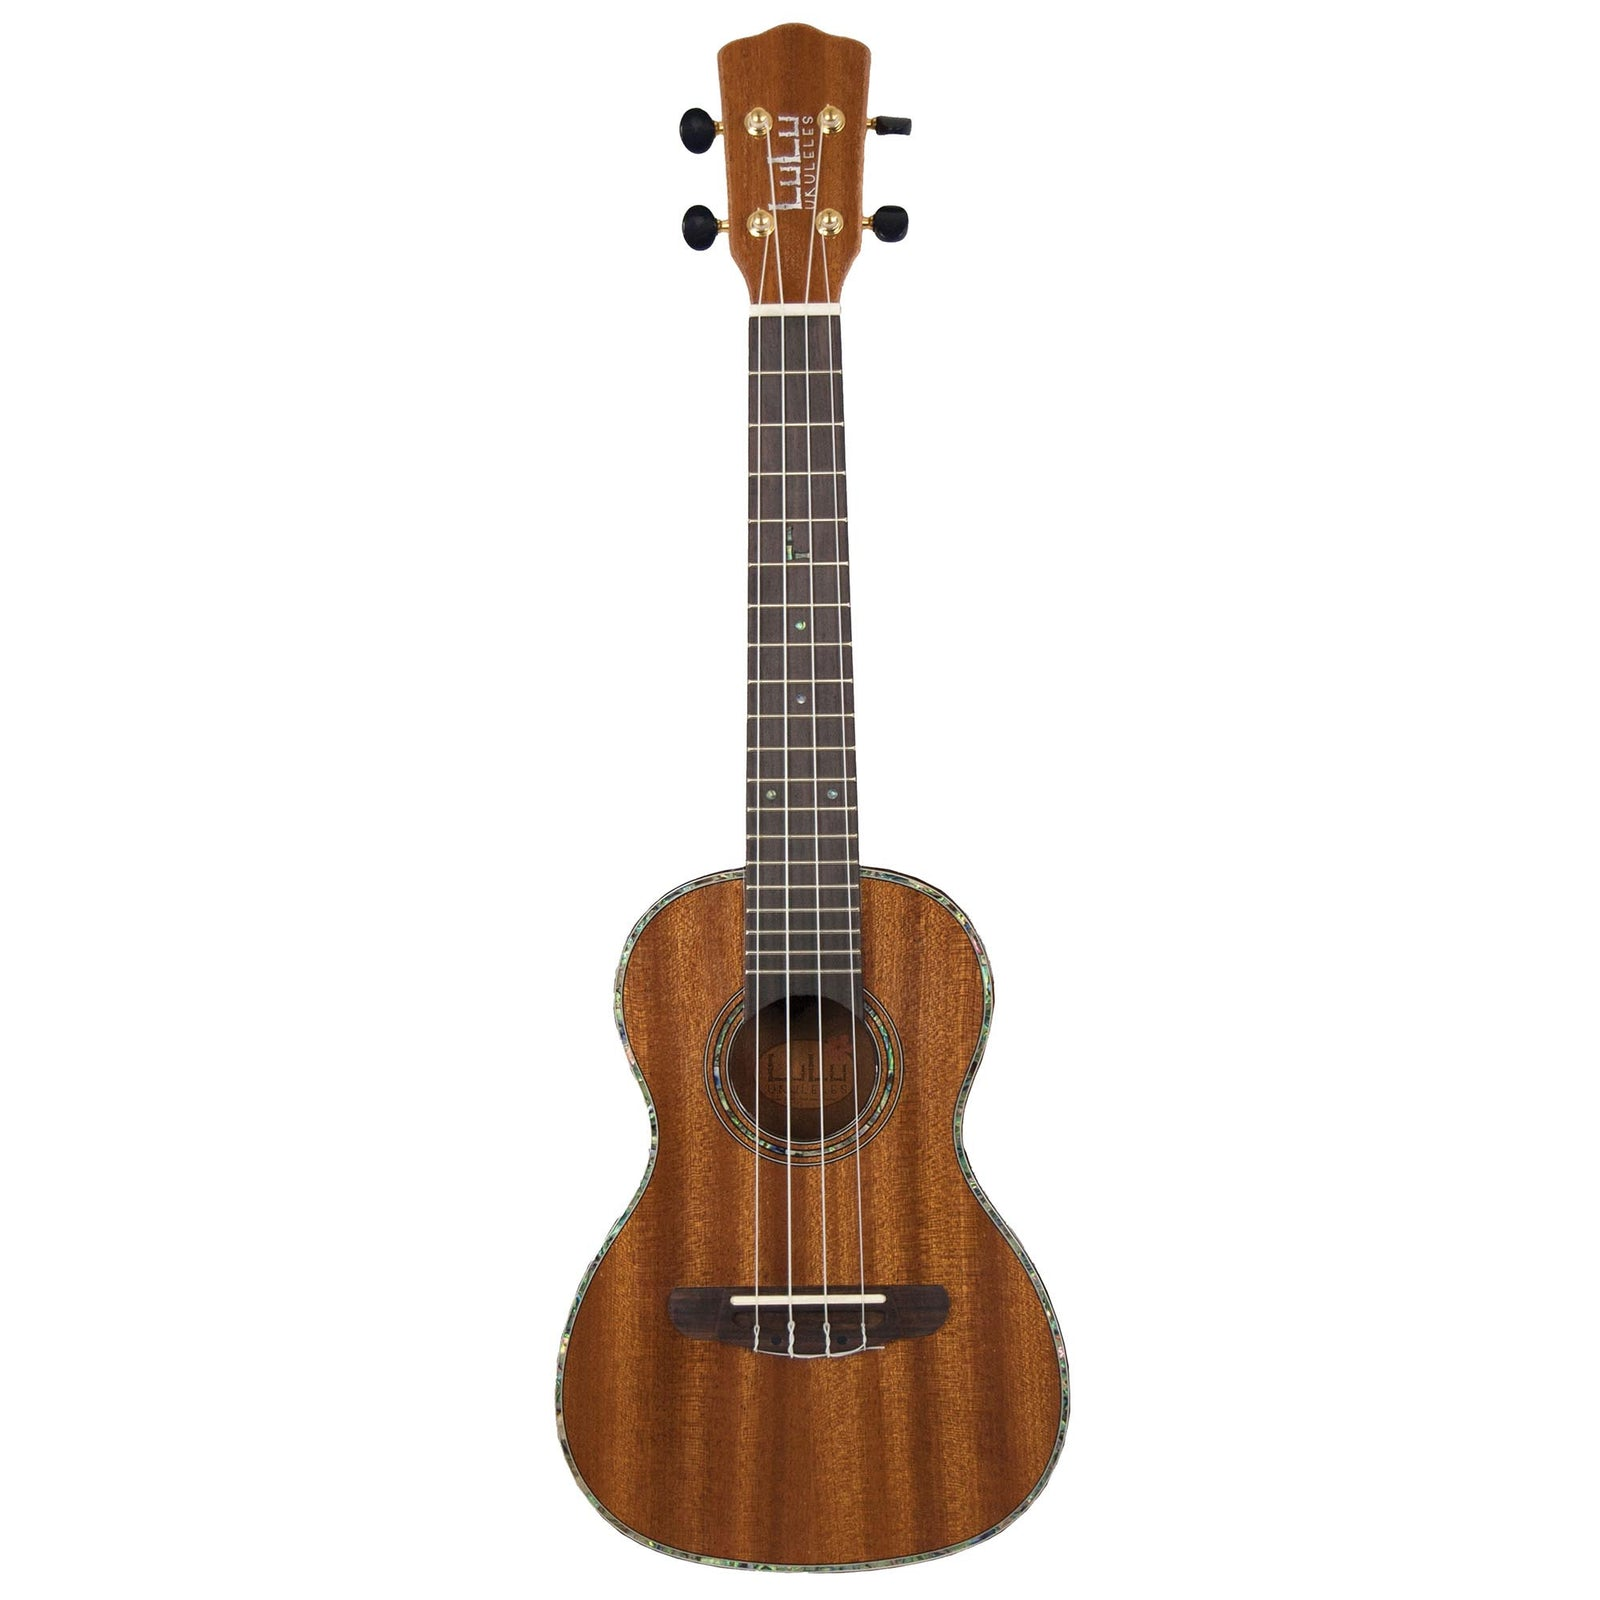 Lulu T1A Tenor Ukulele Solid Mahogany - With Hard Shell Case